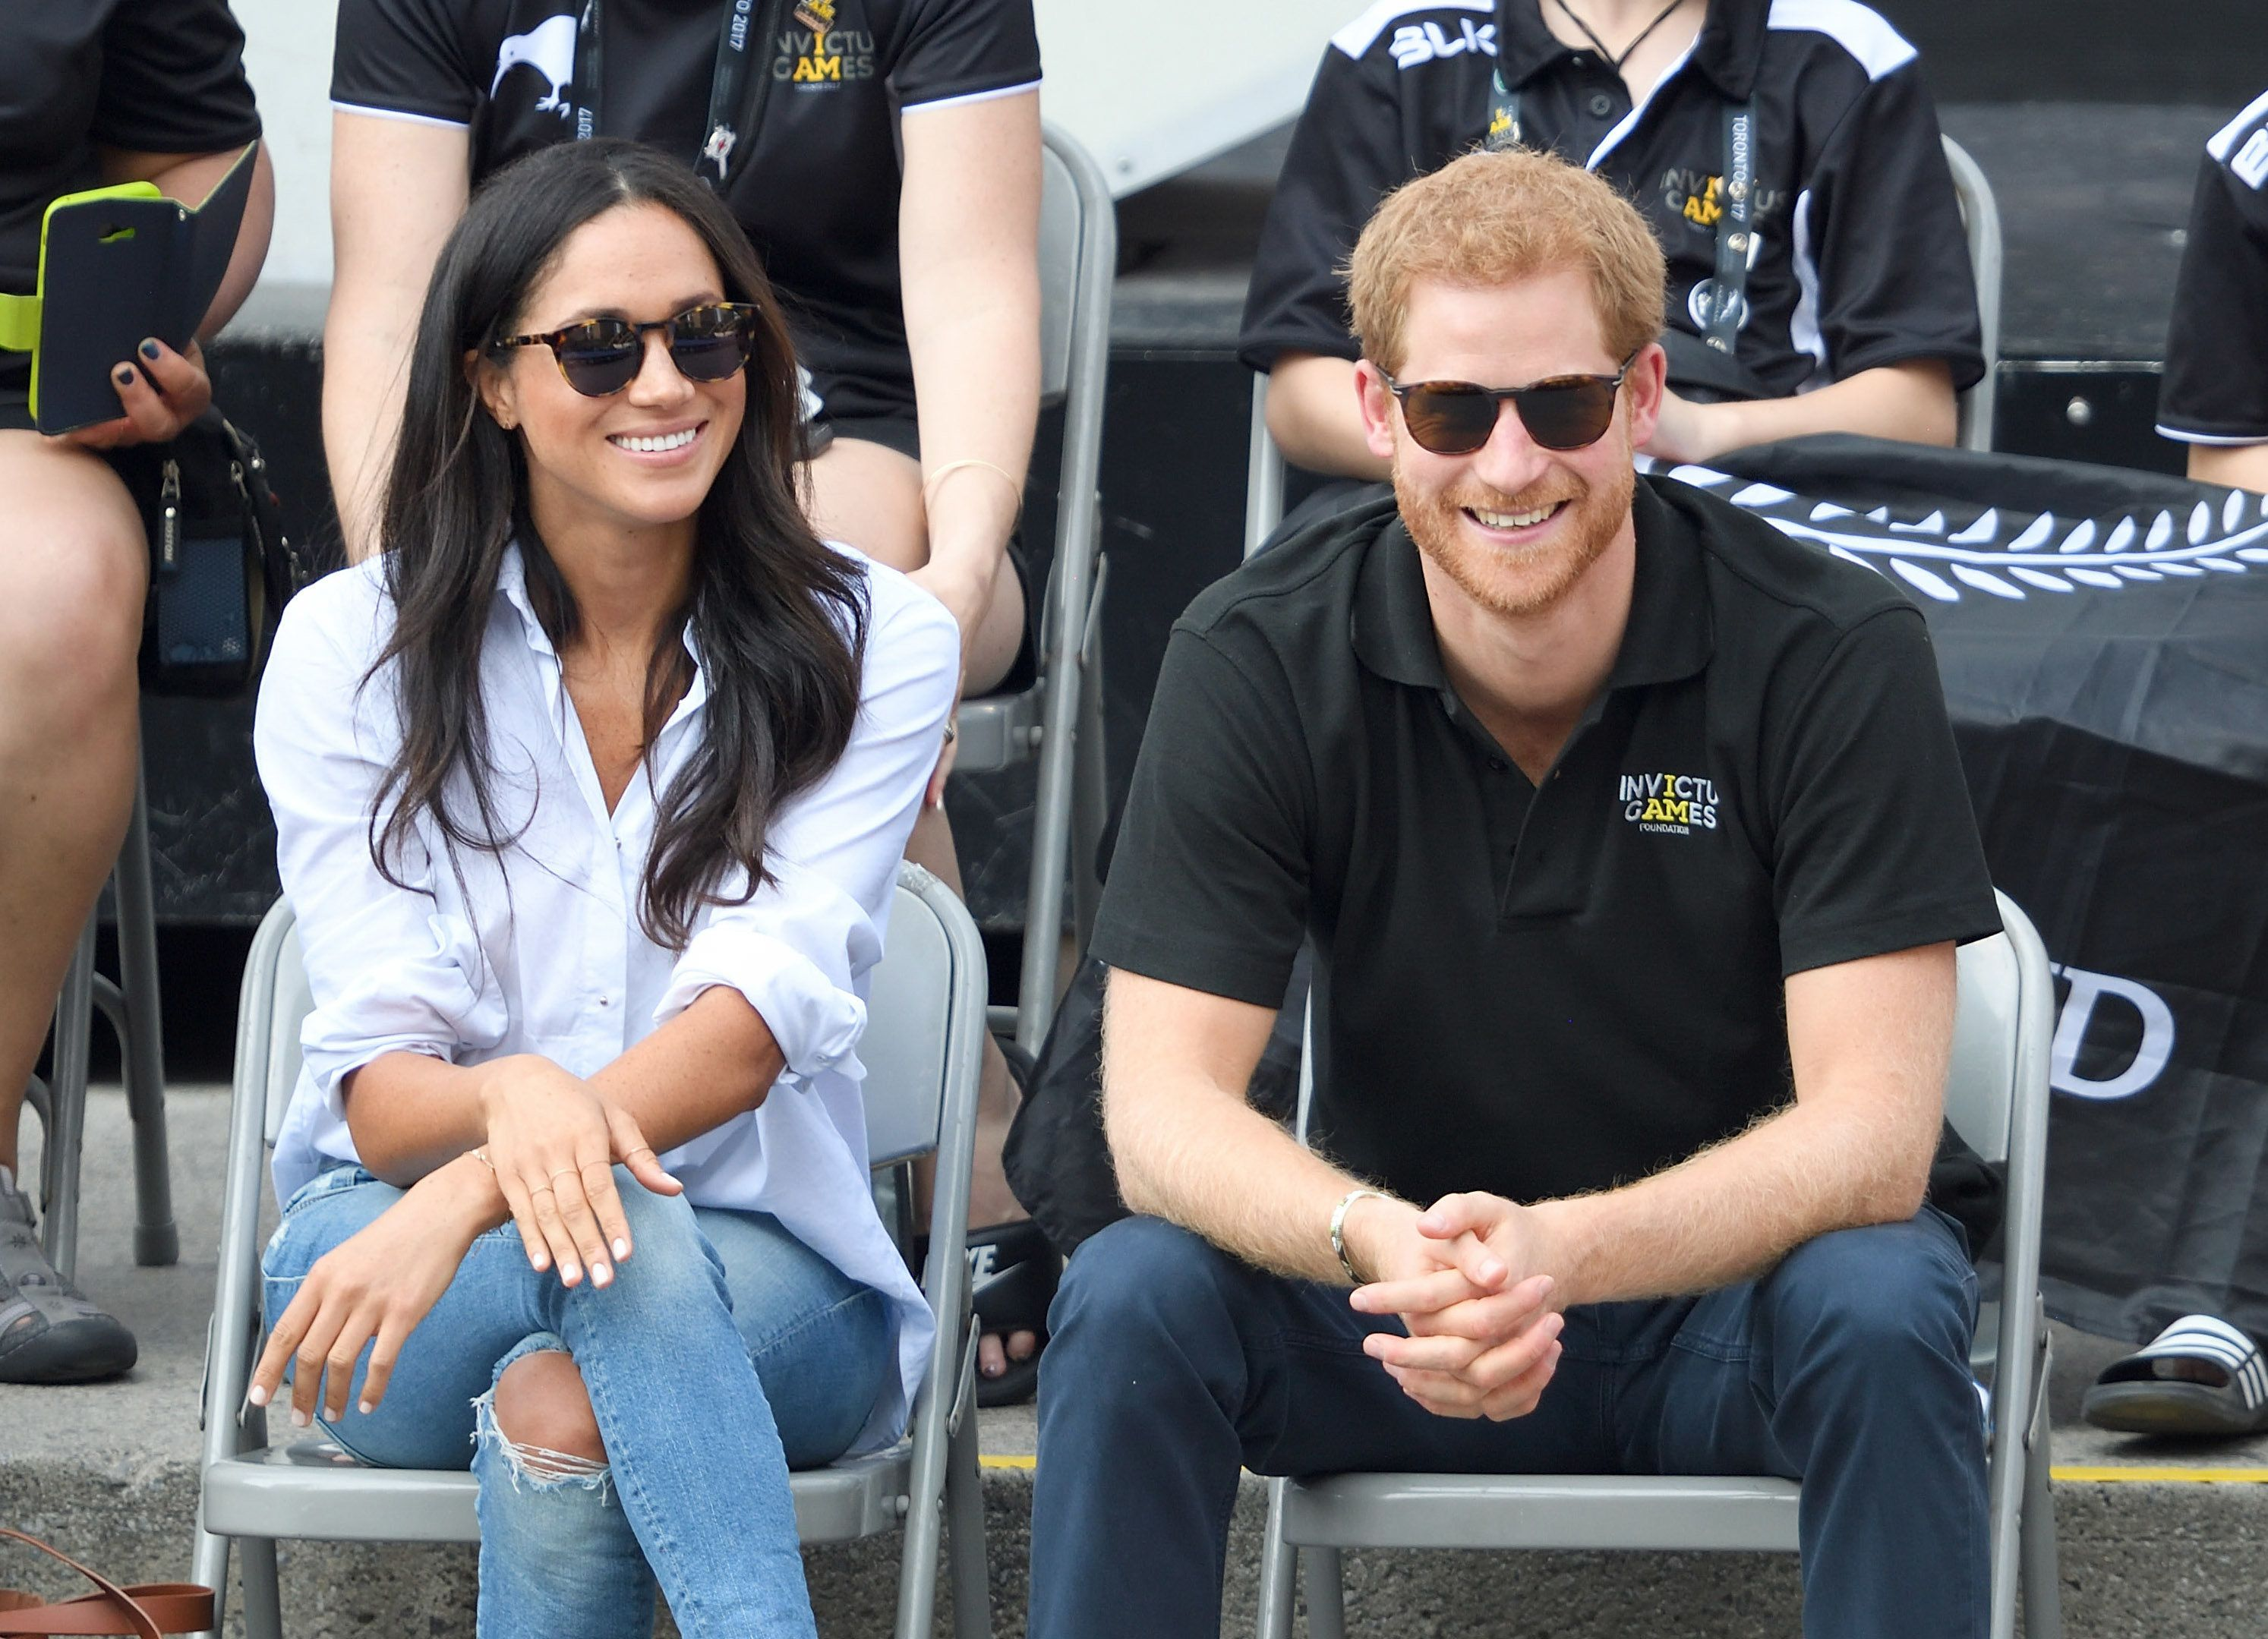 A Body Language Expert On Meghan Markle And Prince Harry